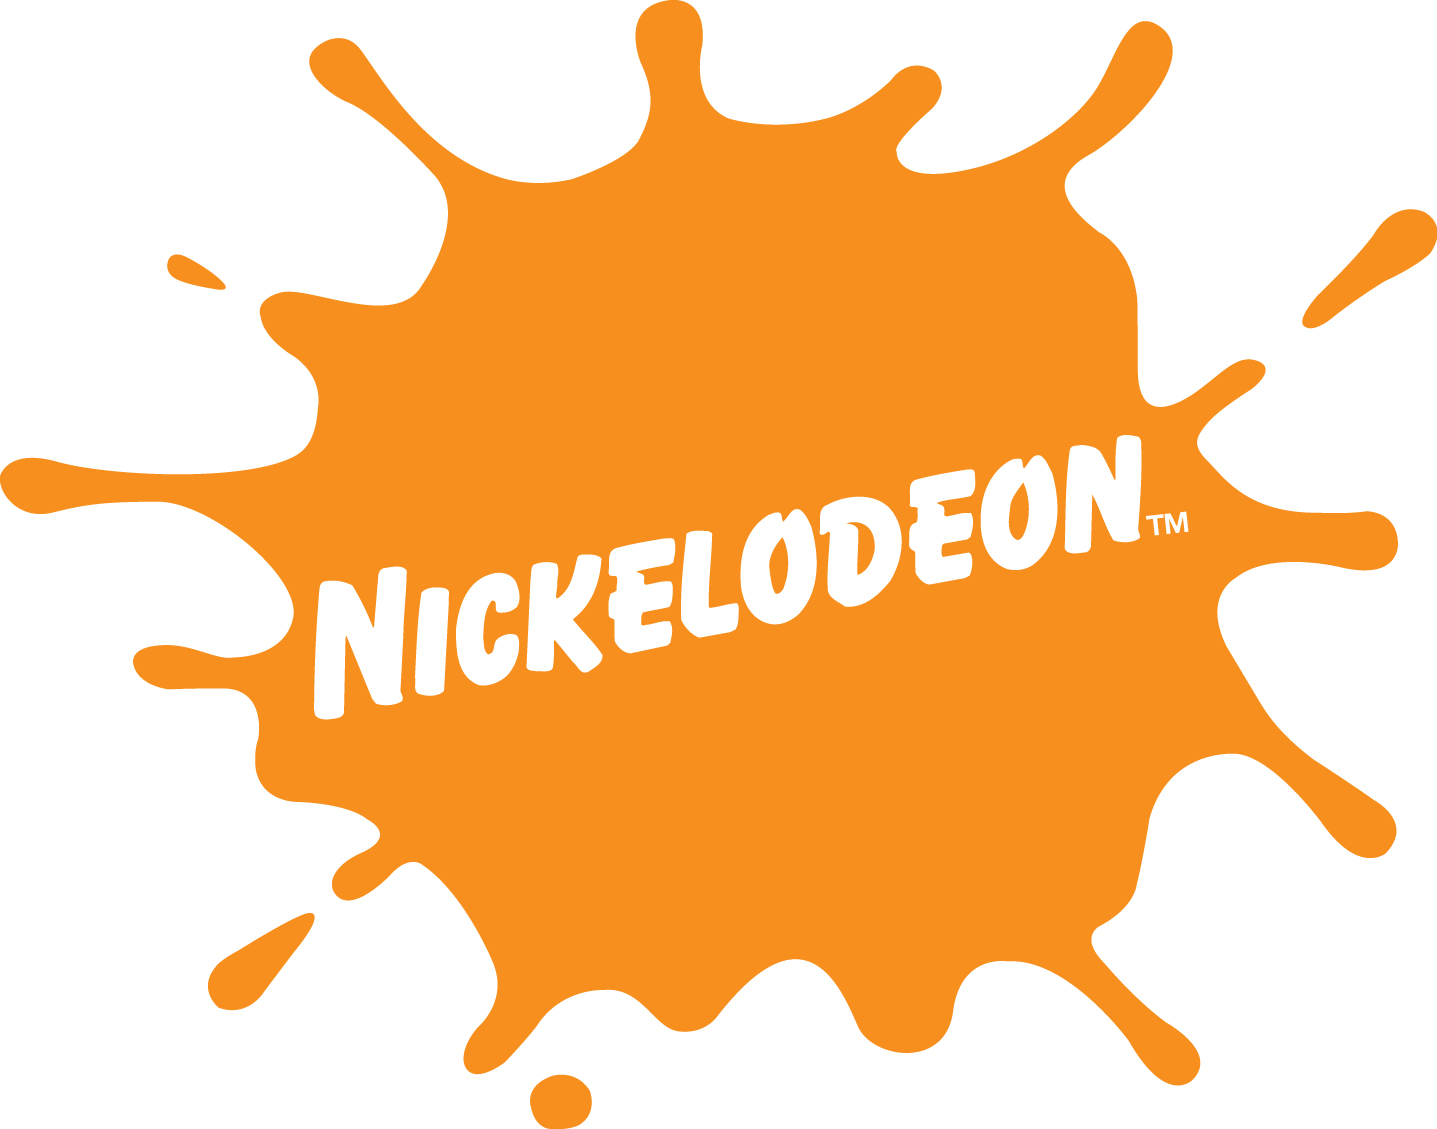 Nickelodeon Logo Wallpaper